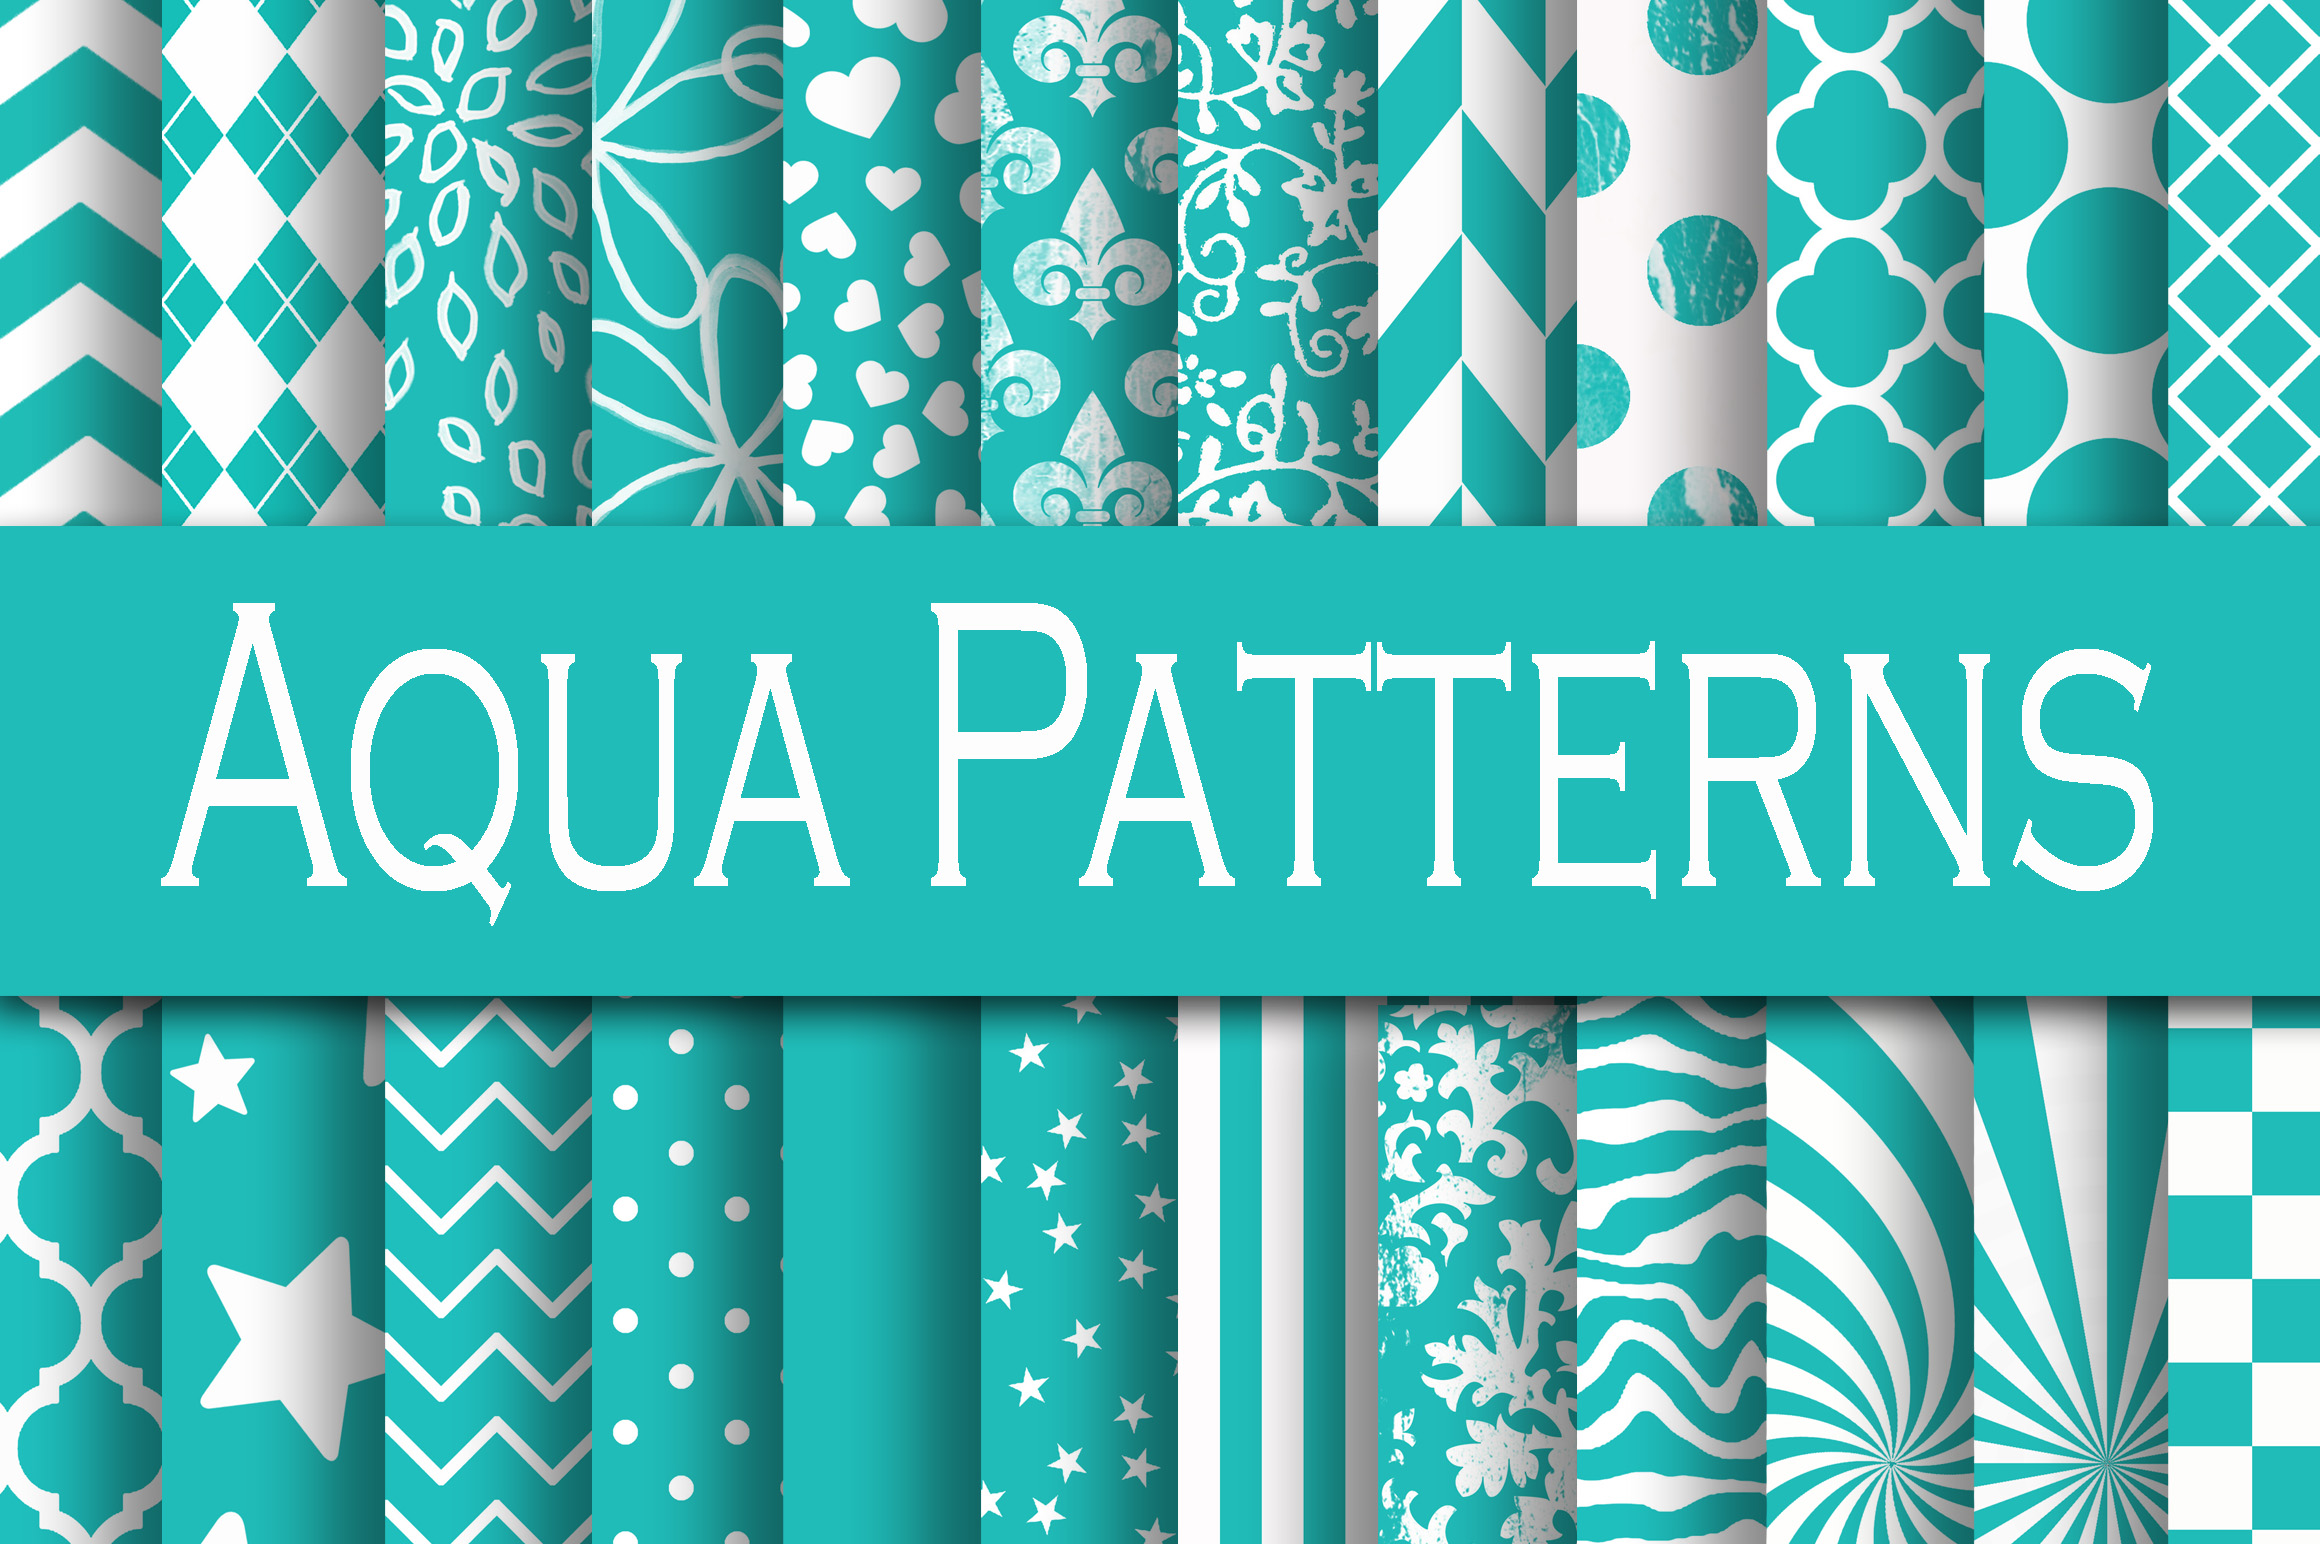 Aqua Patterns Digital Paper Graphic Backgrounds By oldmarketdesigns - Image 1